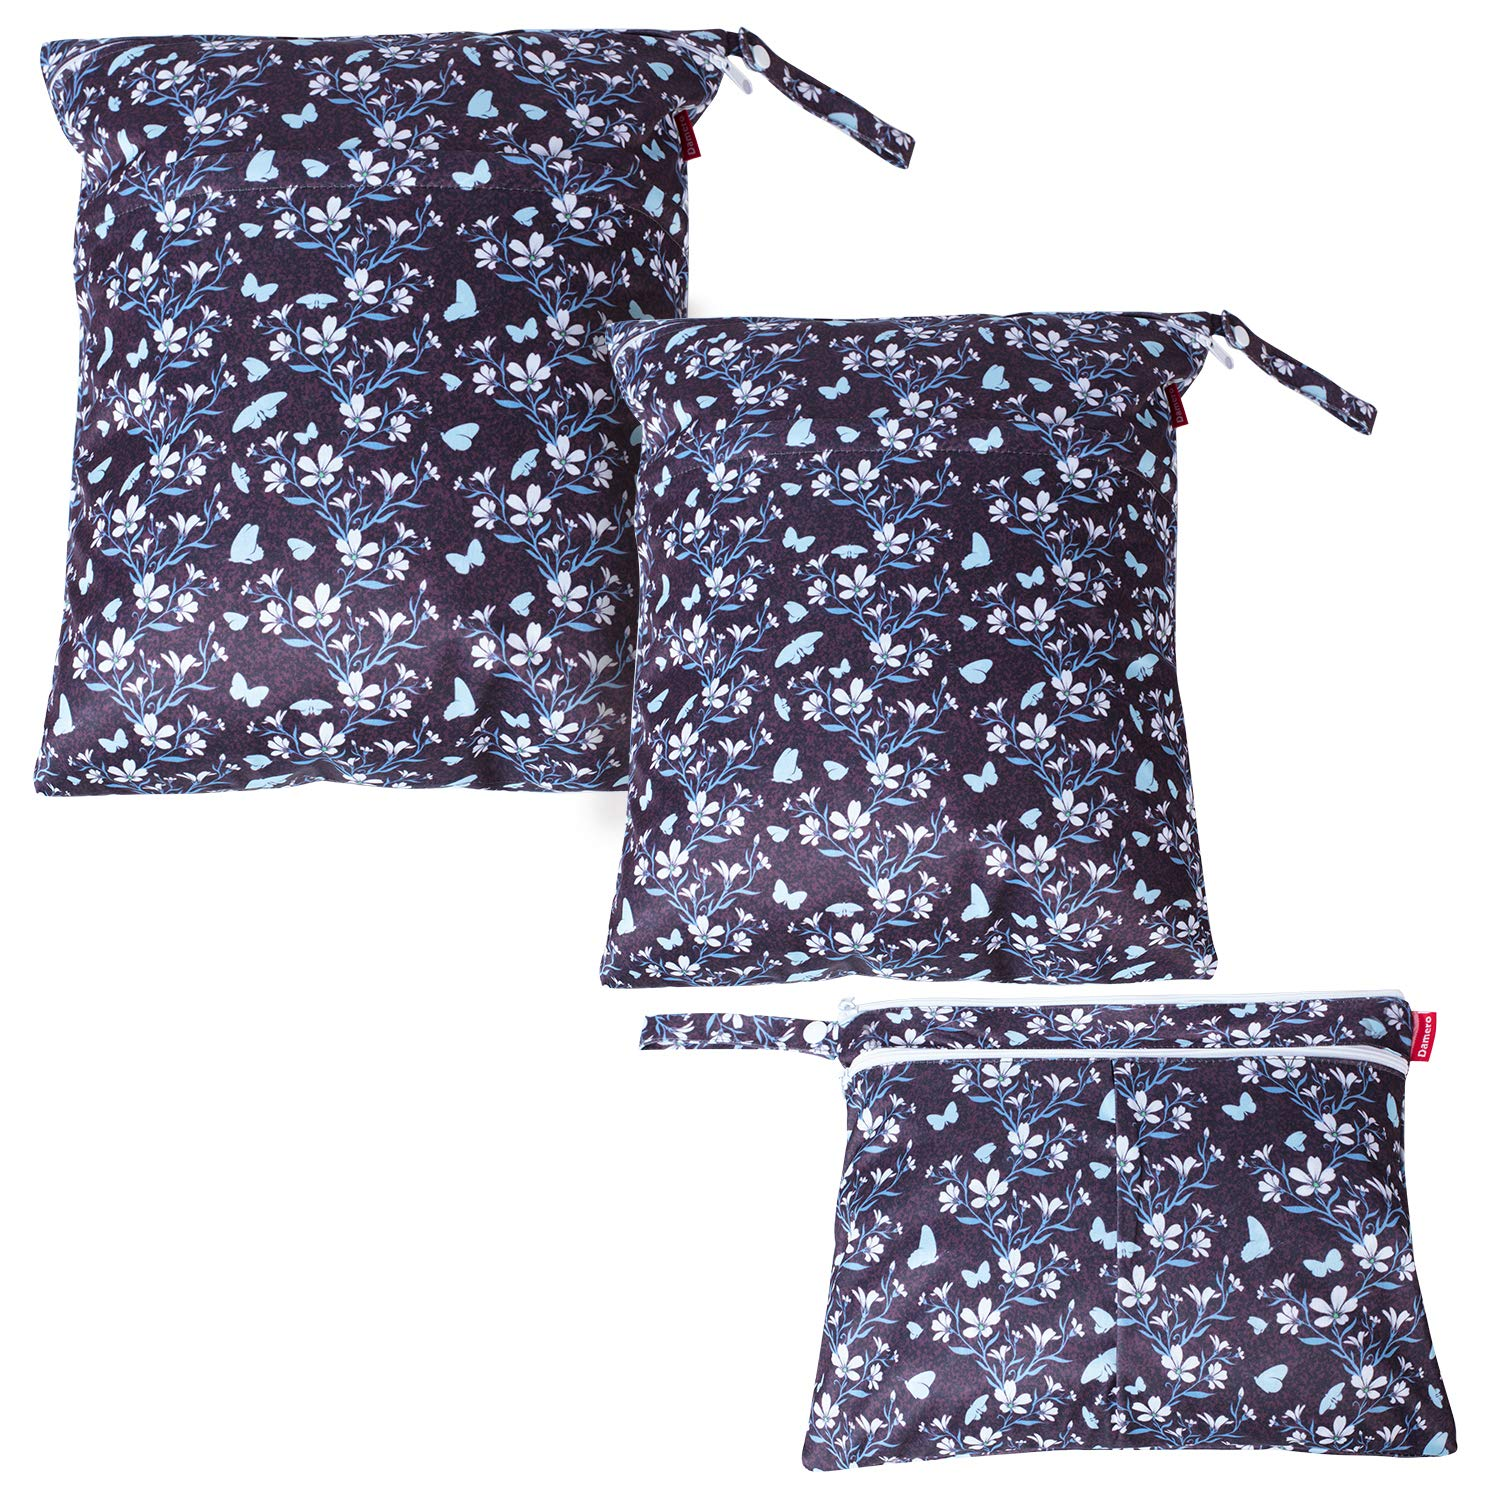 Damero 3Pcs Wet Dry Bag for Cloth Diaper, Swimsuit, Clothes, Ideal for Travel, Exercise, Daycare, Roomy and Water-Resistant(Butterflies and Flowers)